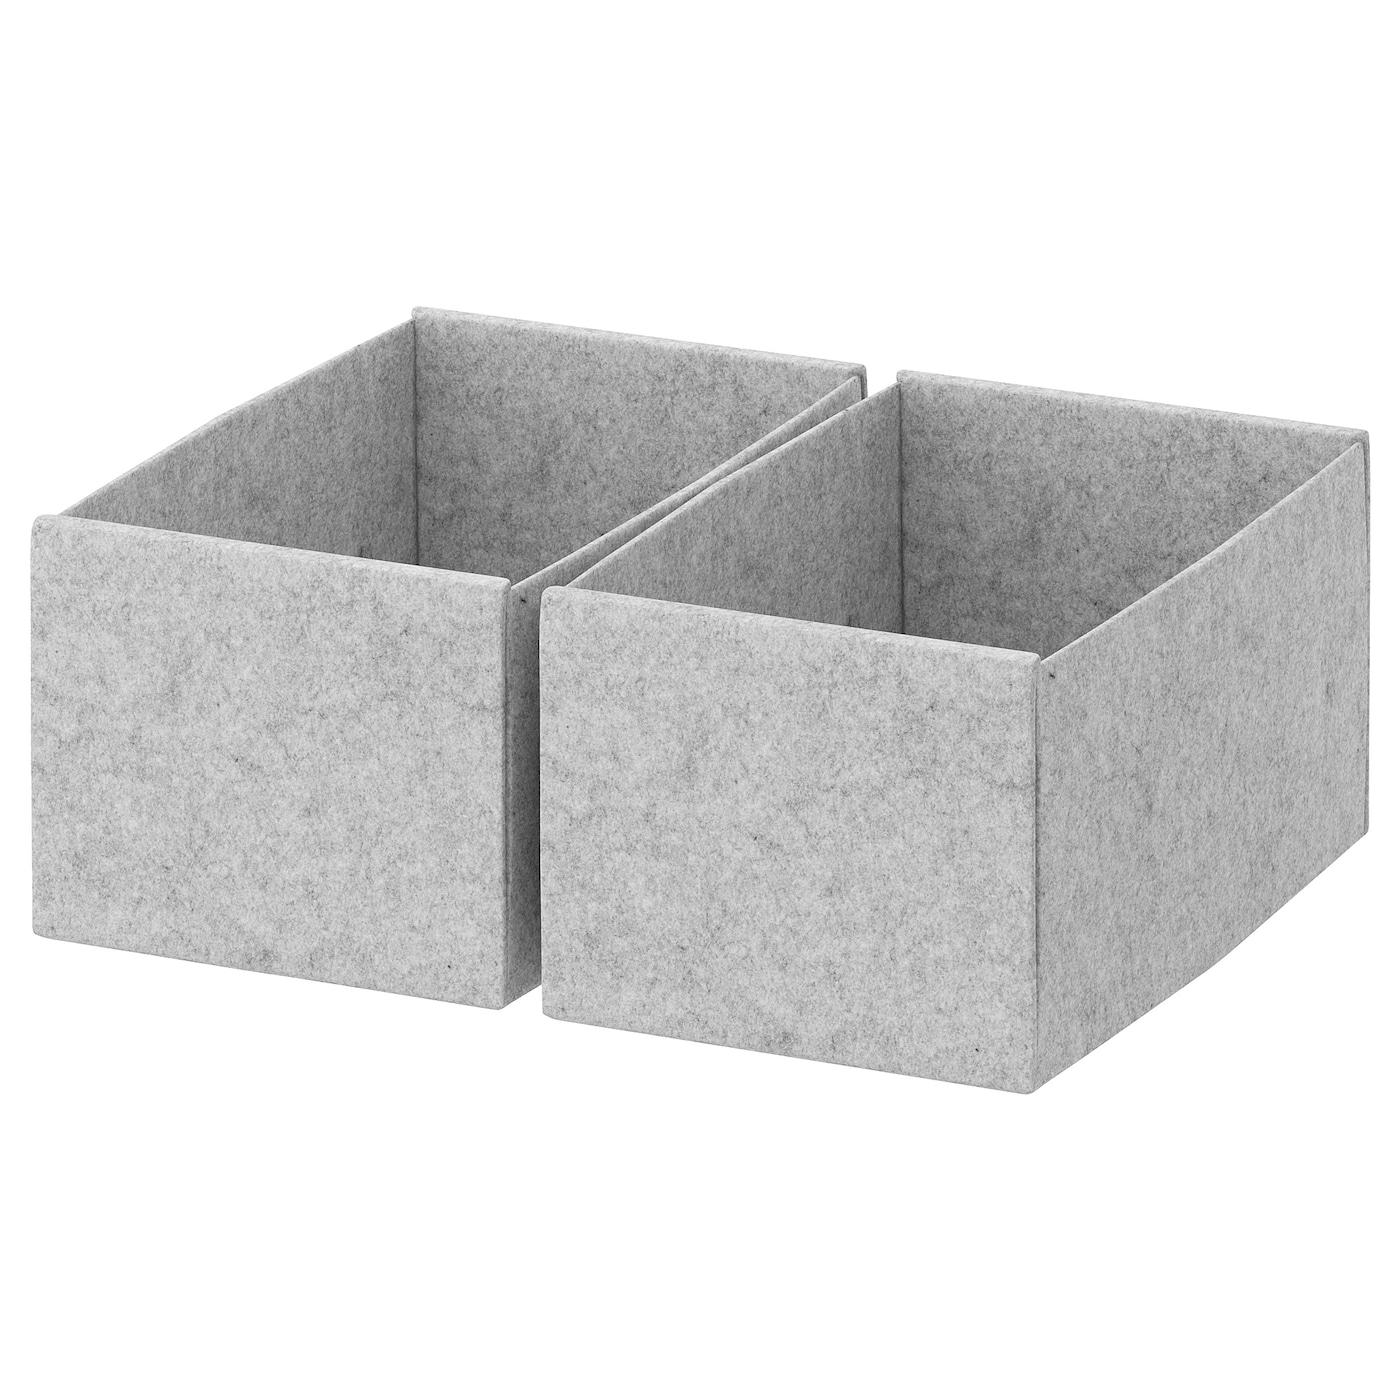 KOMPLEMENT Box - 27 x 15 x 12 cm - 2er Set